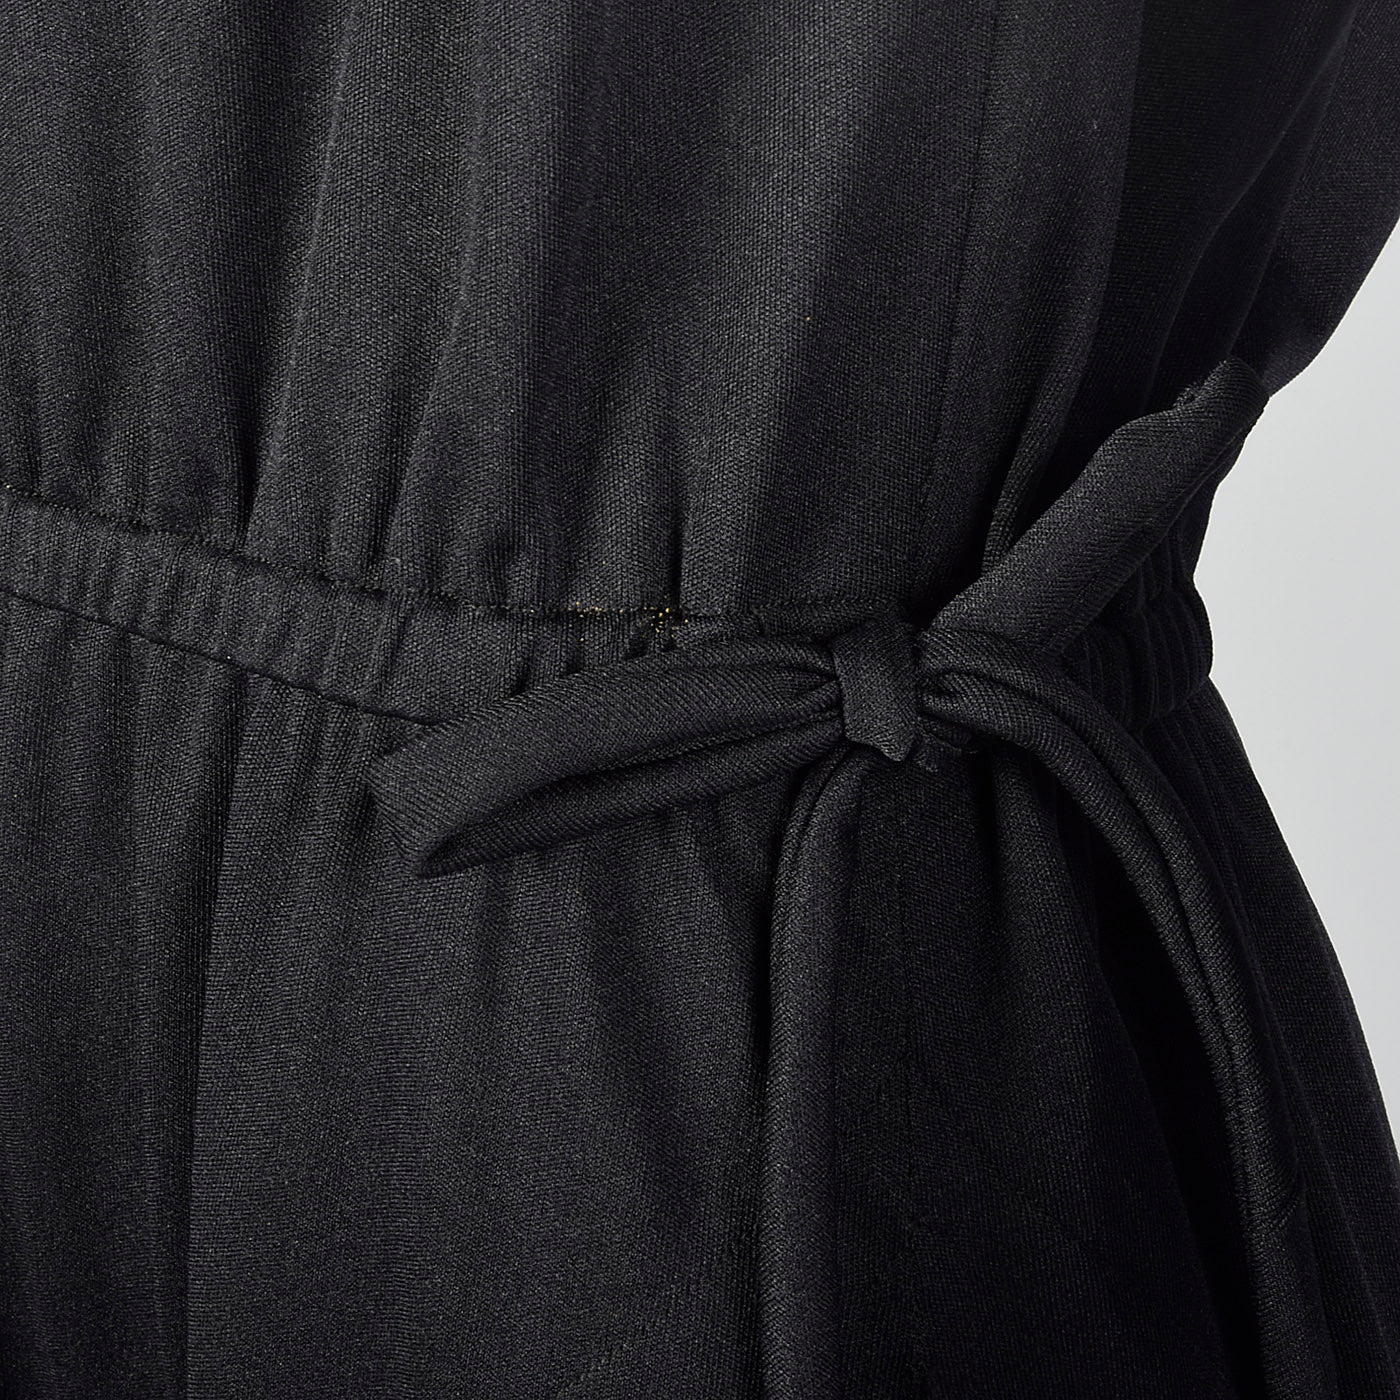 1970s Black Maxi Dress with Faux Drawstring Details